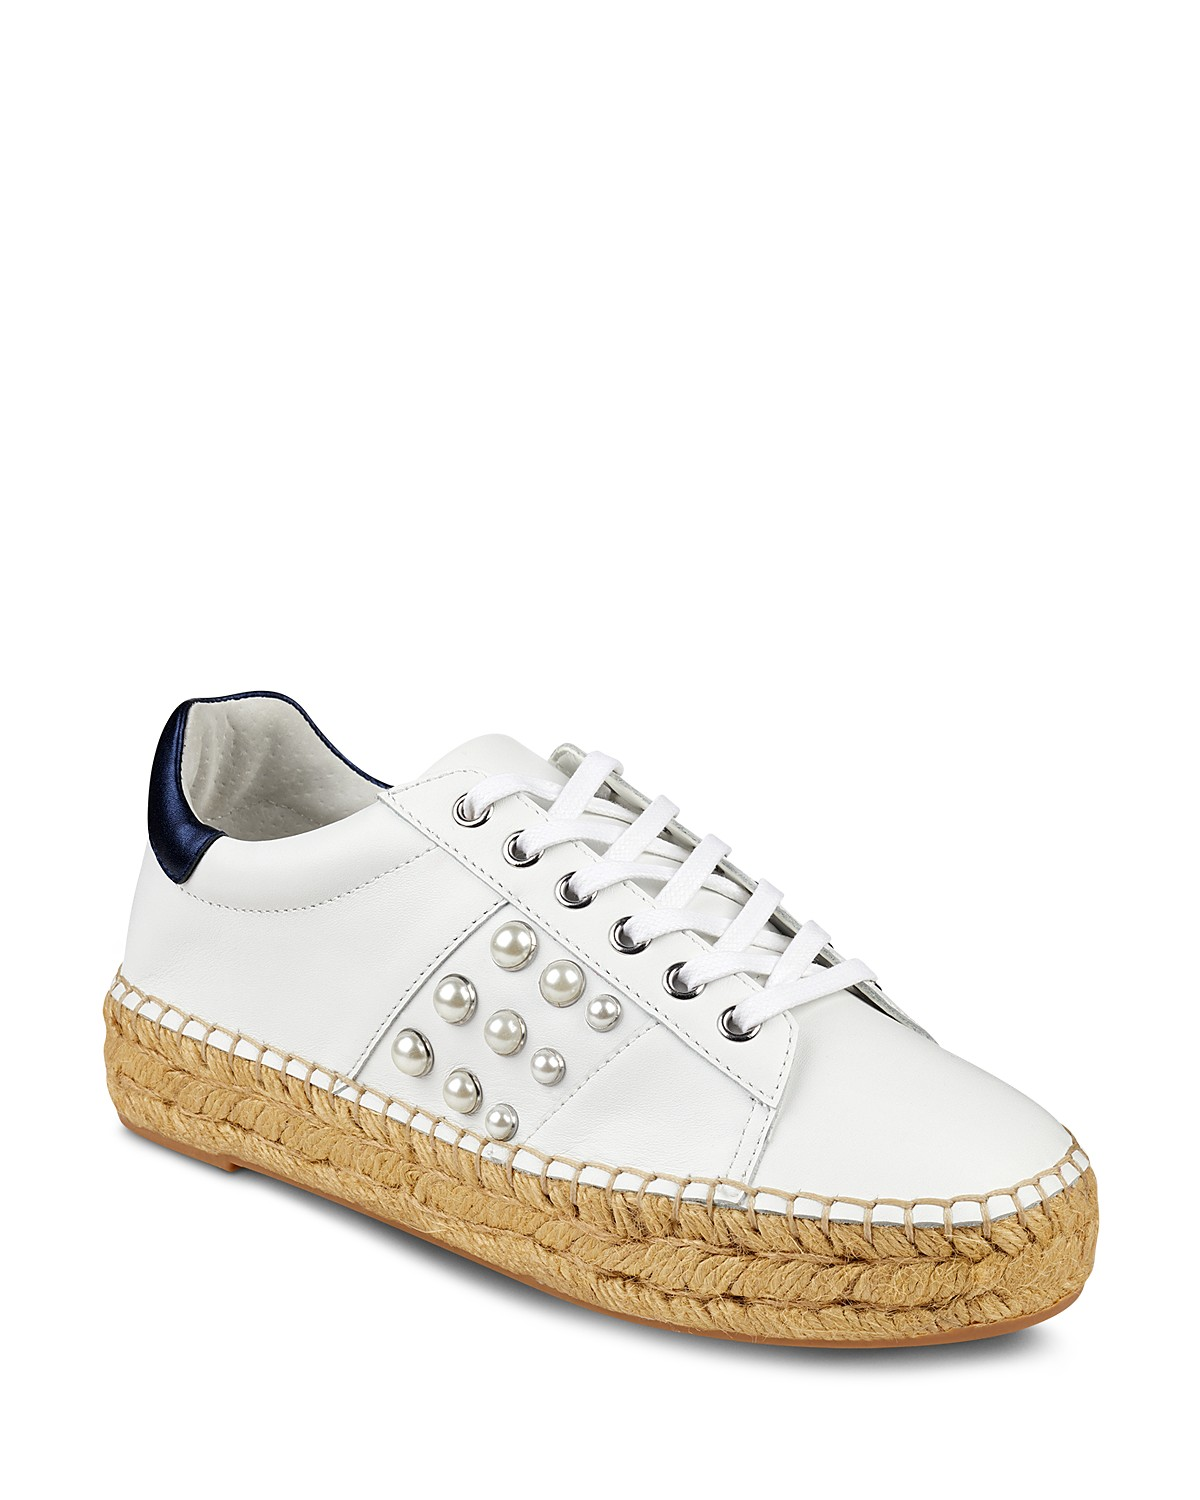 MARC FISHER Women's Marge Leather Lace-Up Espadrille Sneaker ovaH8z6nz